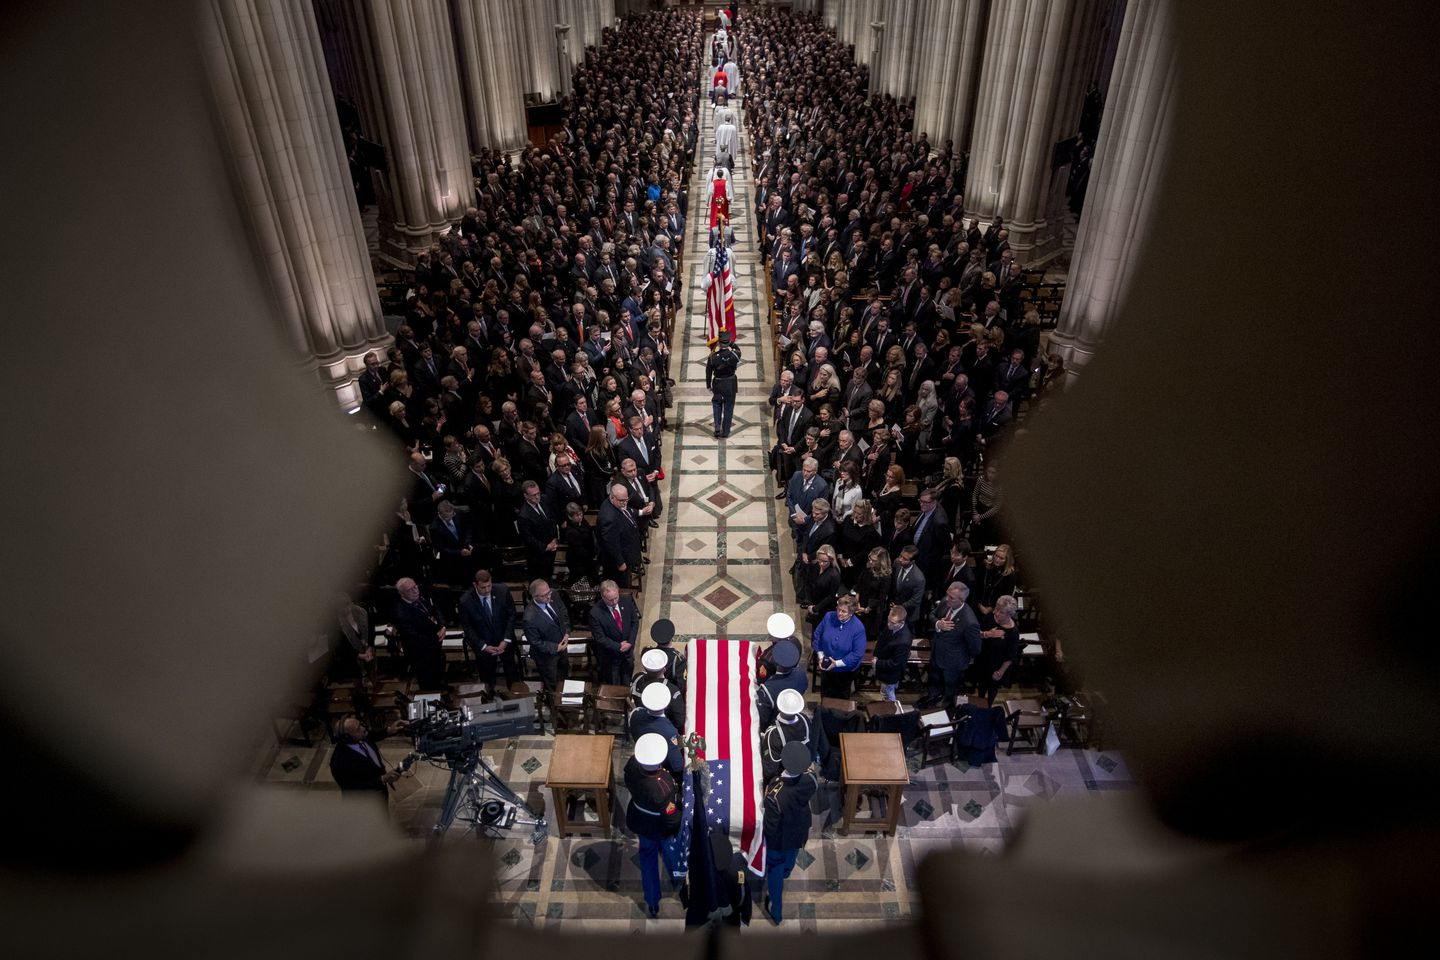 The flag-draped casket of former President George H.W. Bush was carried by a military honor guard.